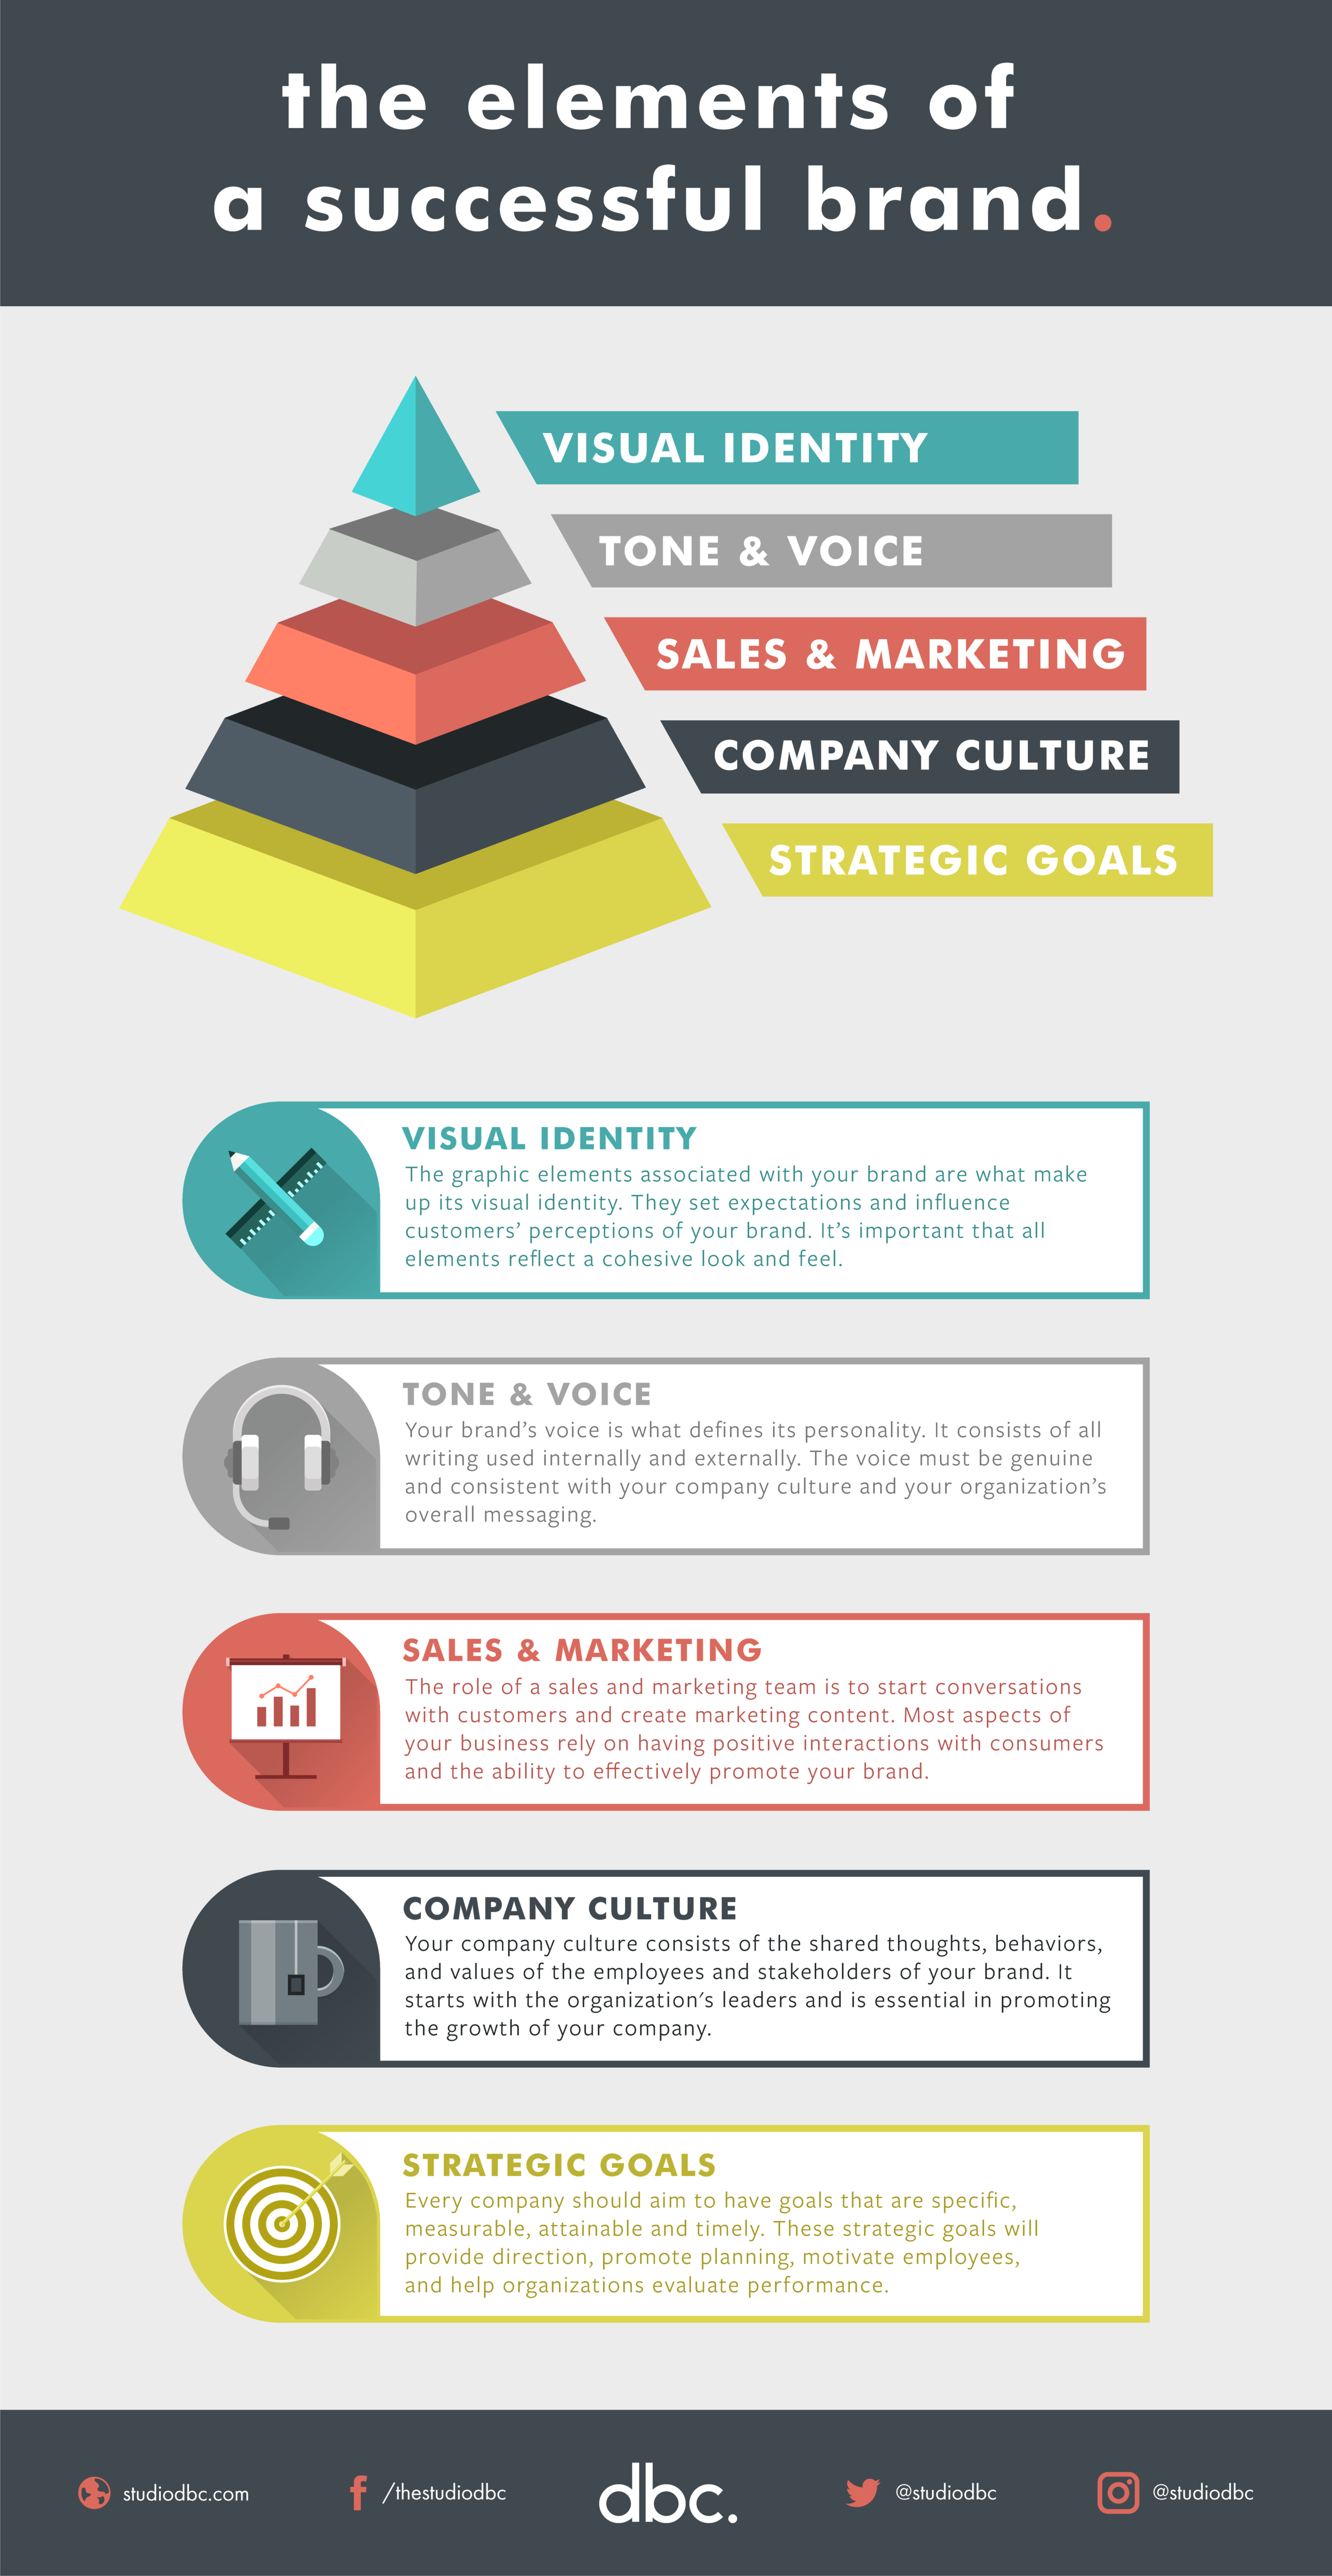 Elements of a Successful Brand - Infographic.png